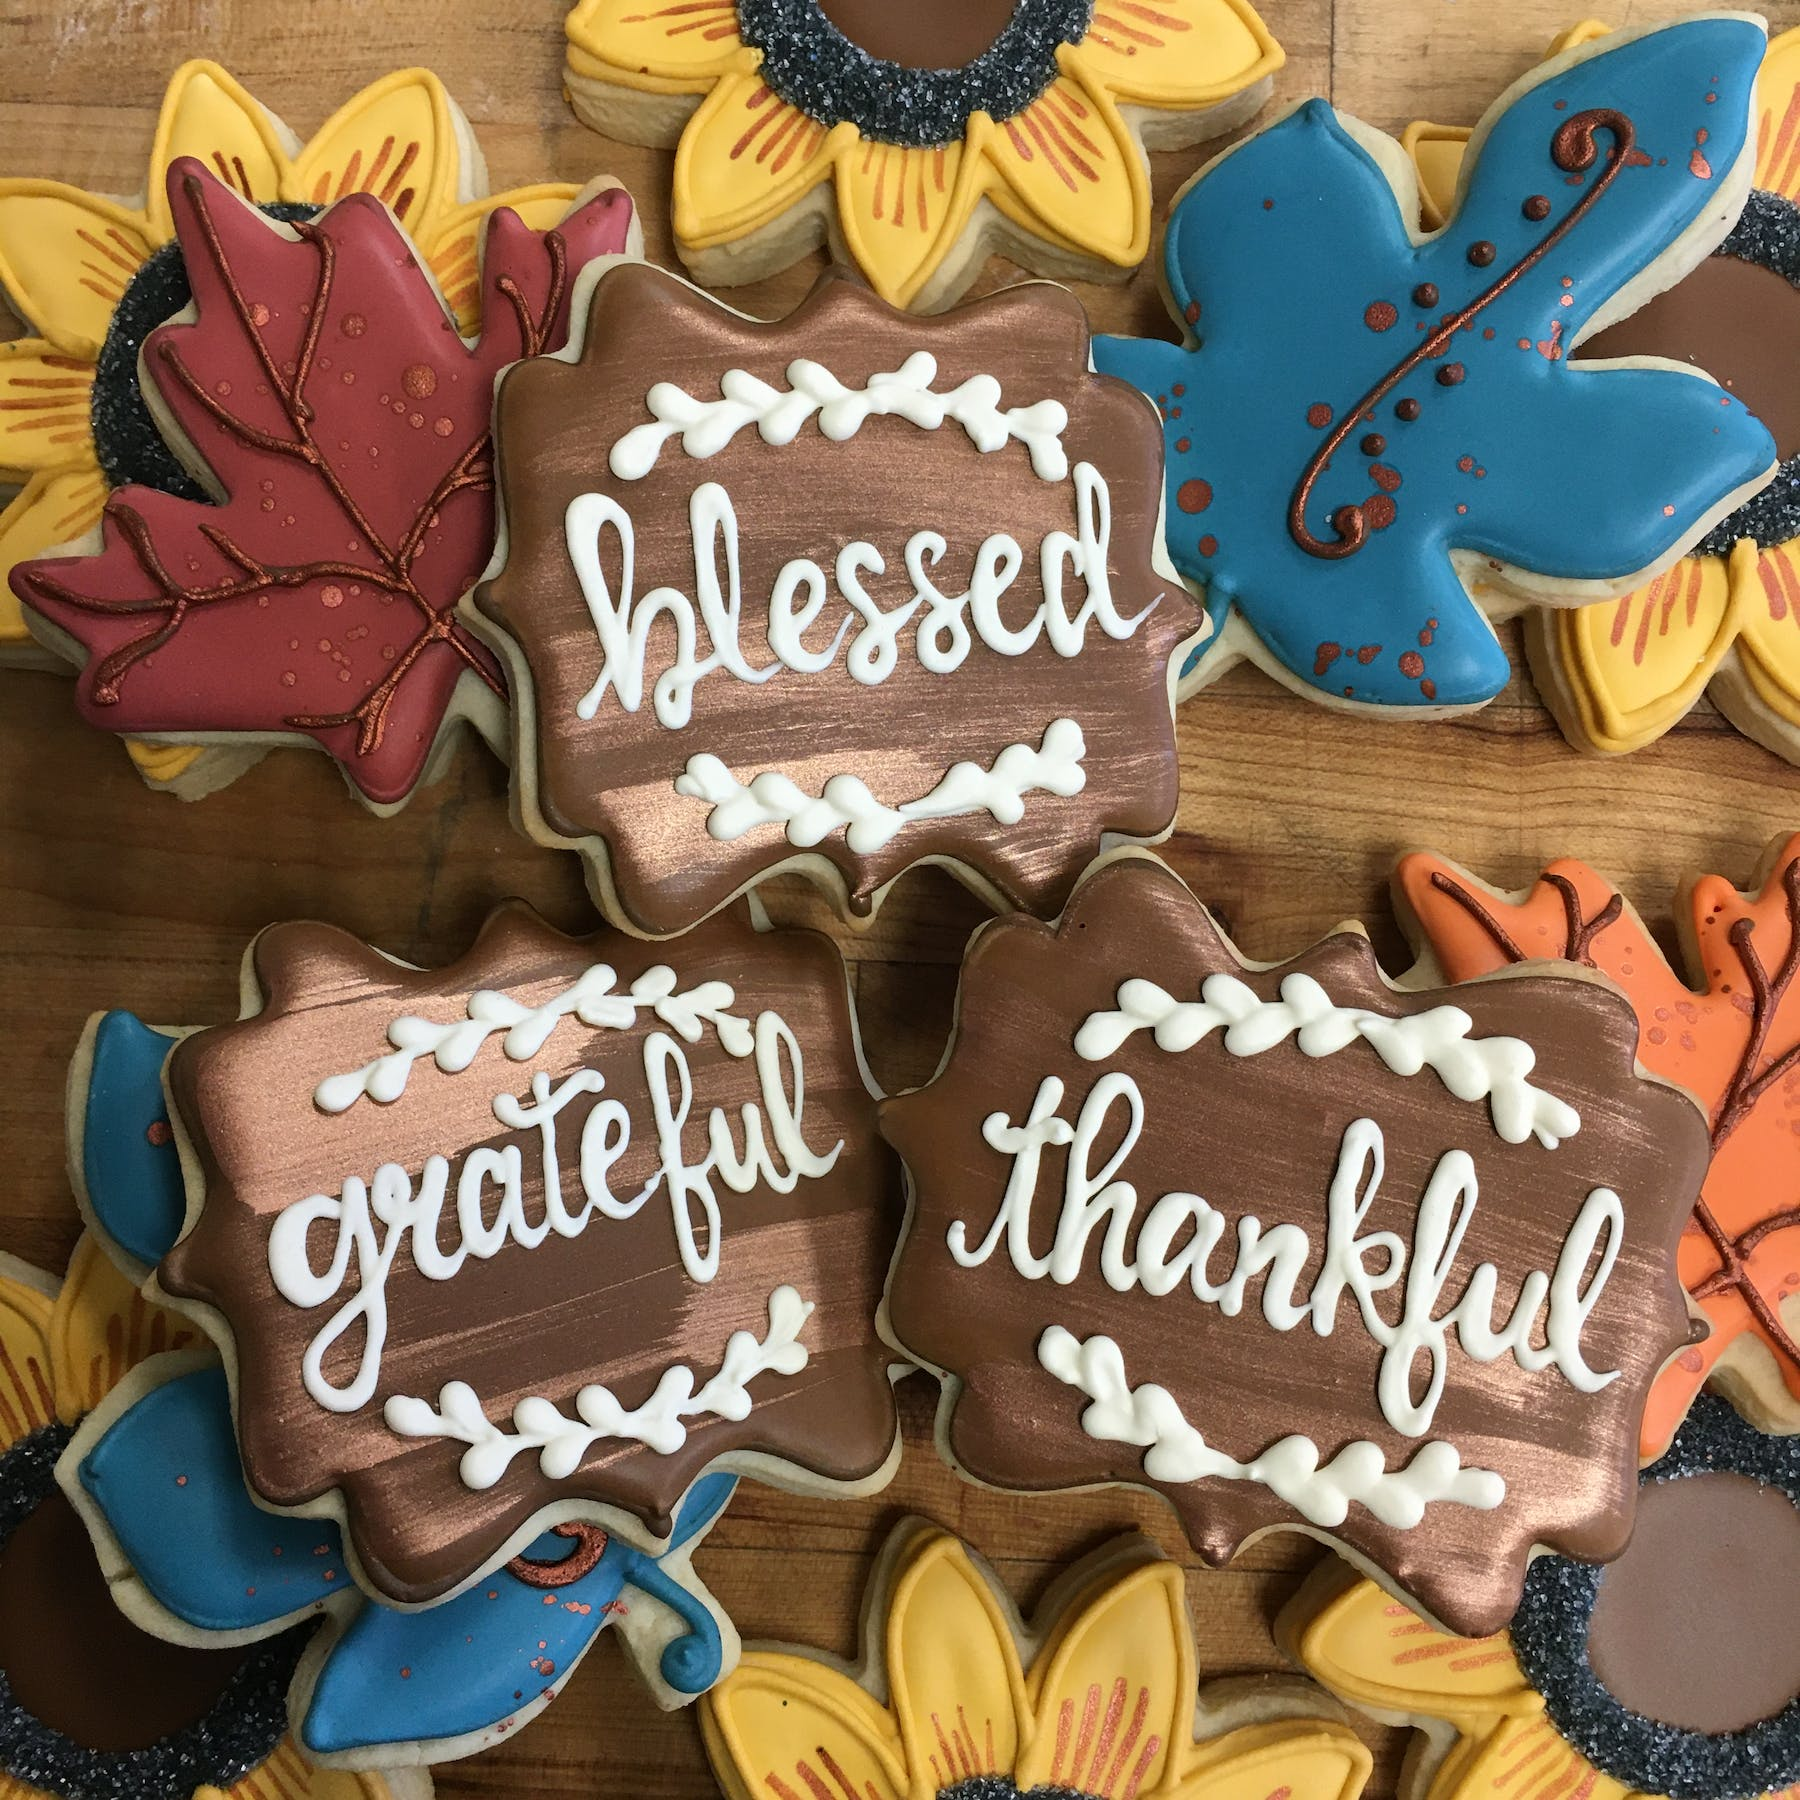 plaques, leaves, sunflowers decorated cookies